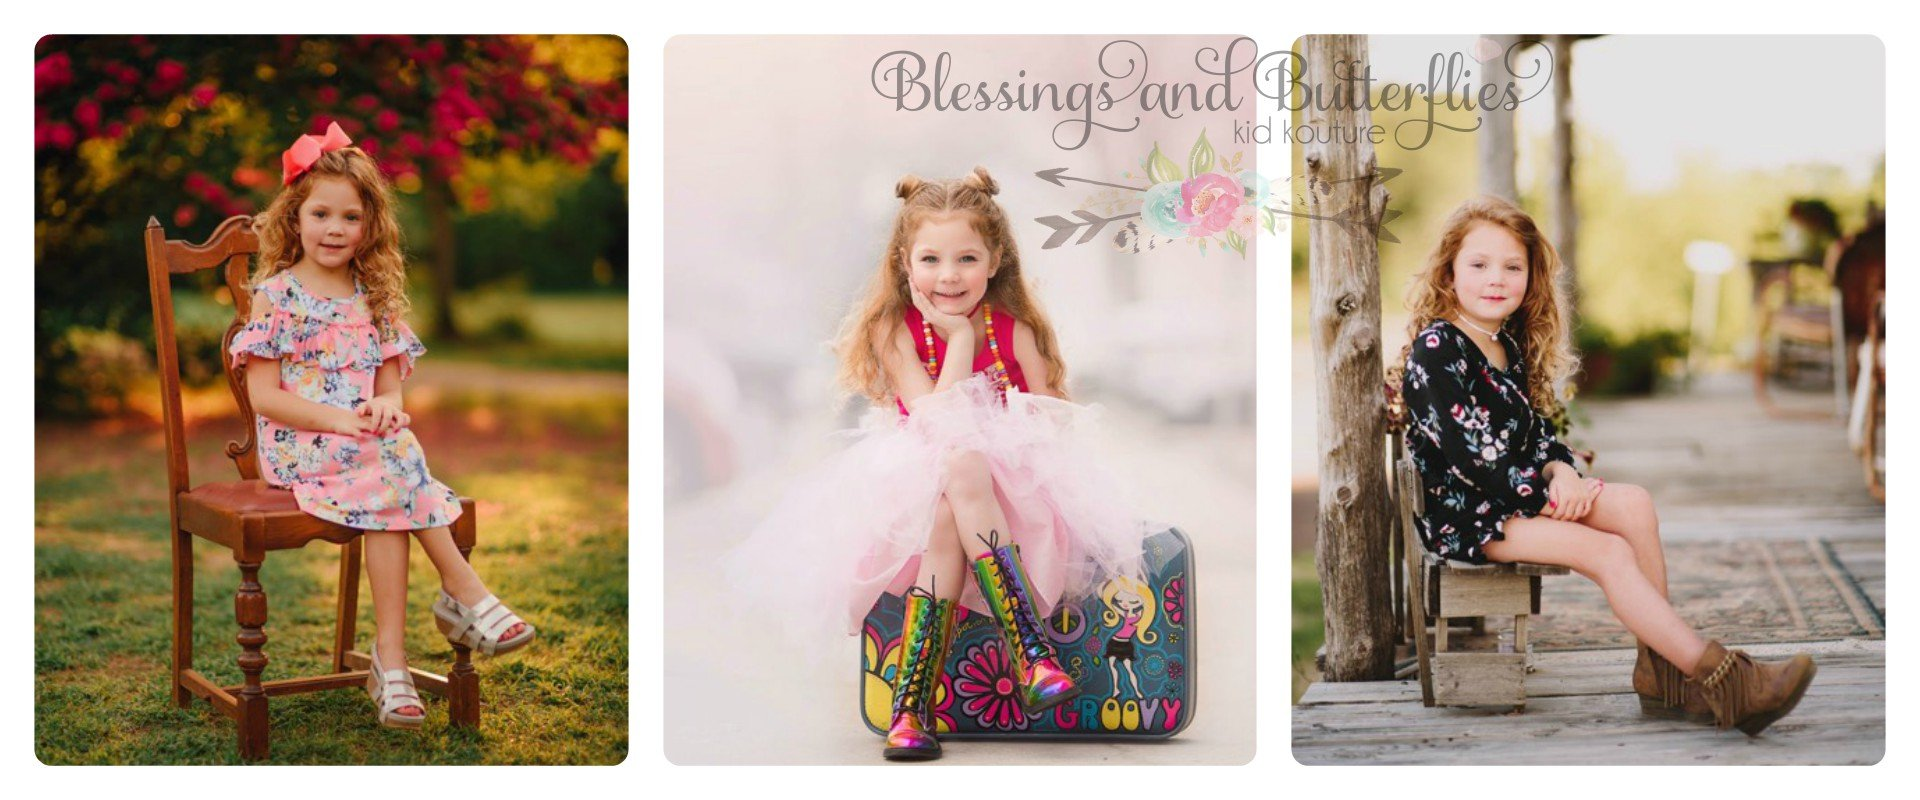 Blessings and Butterflies Children's Clothing